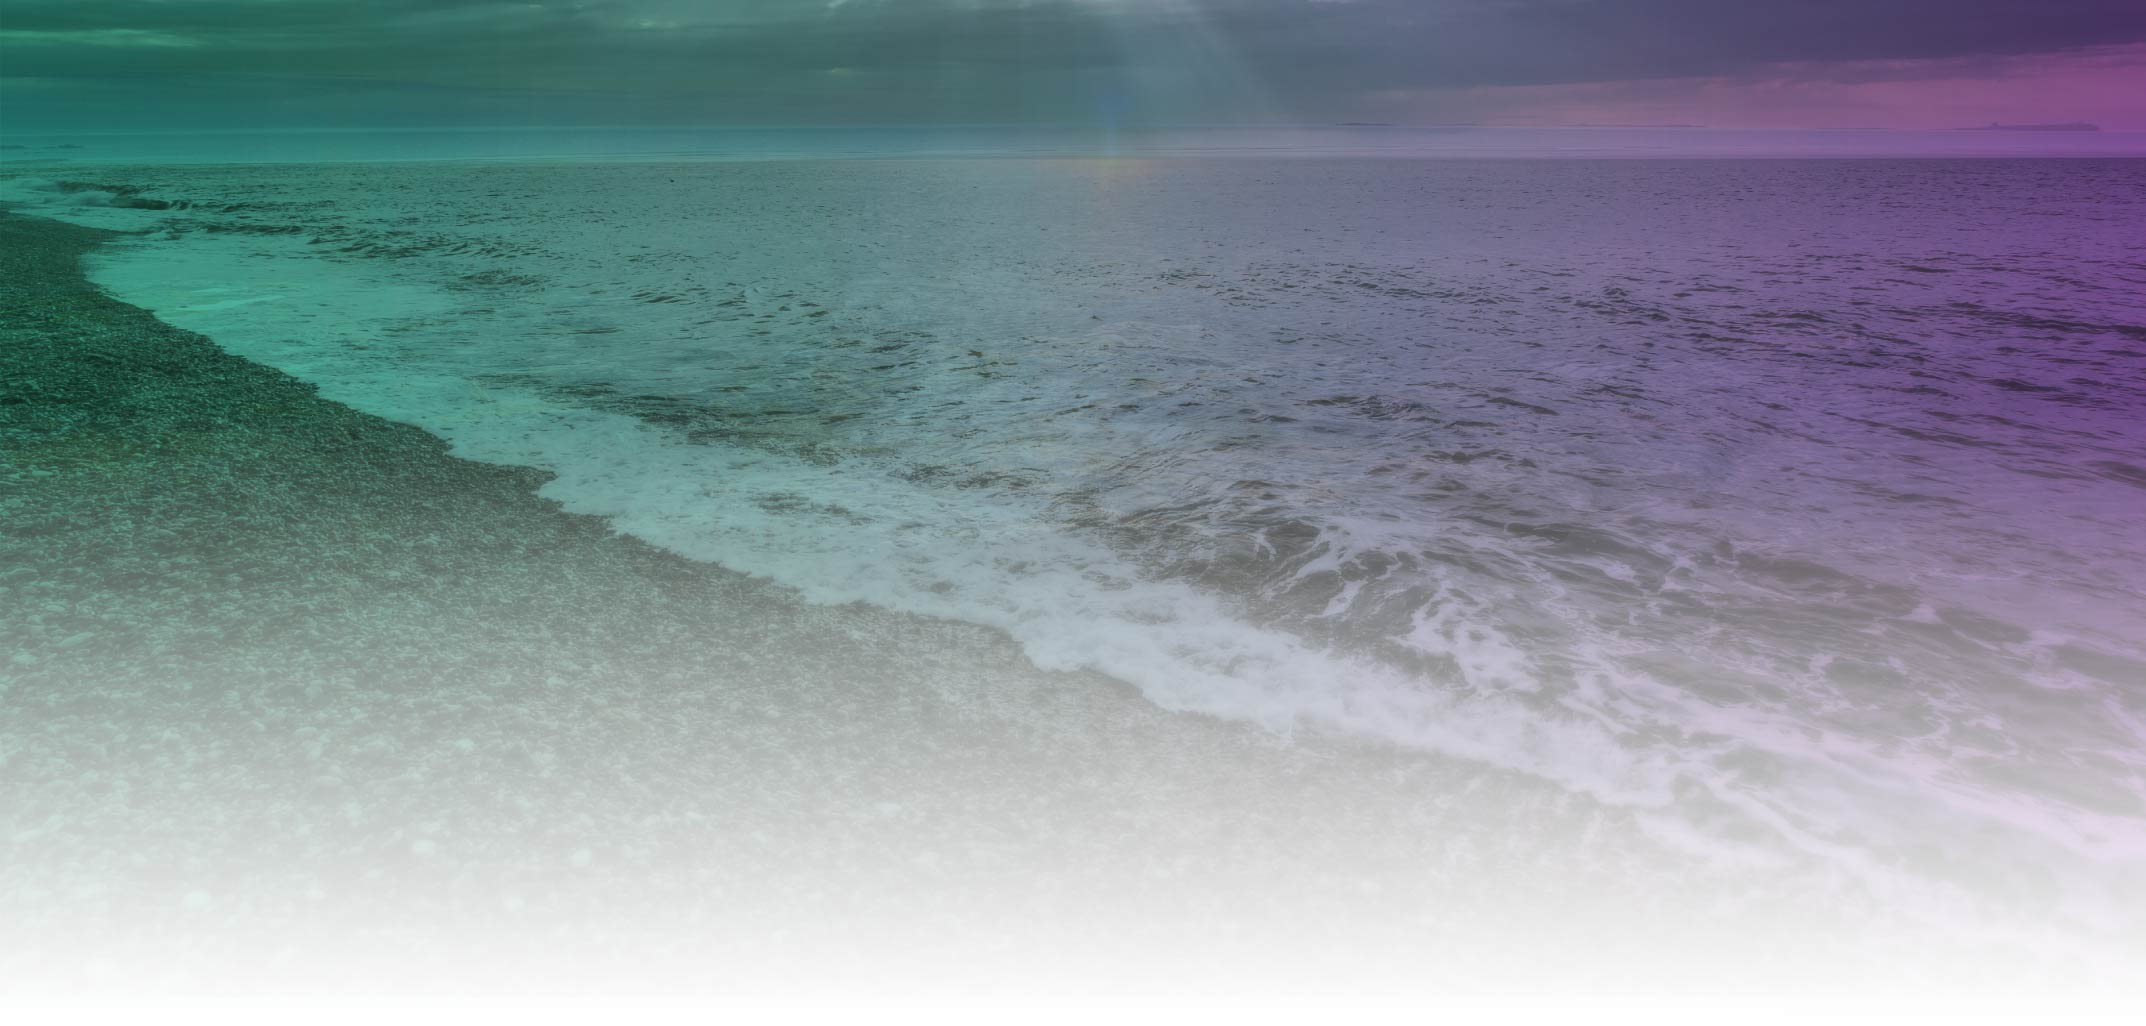 Vibrational Healing Ocean Waves with Colored Light